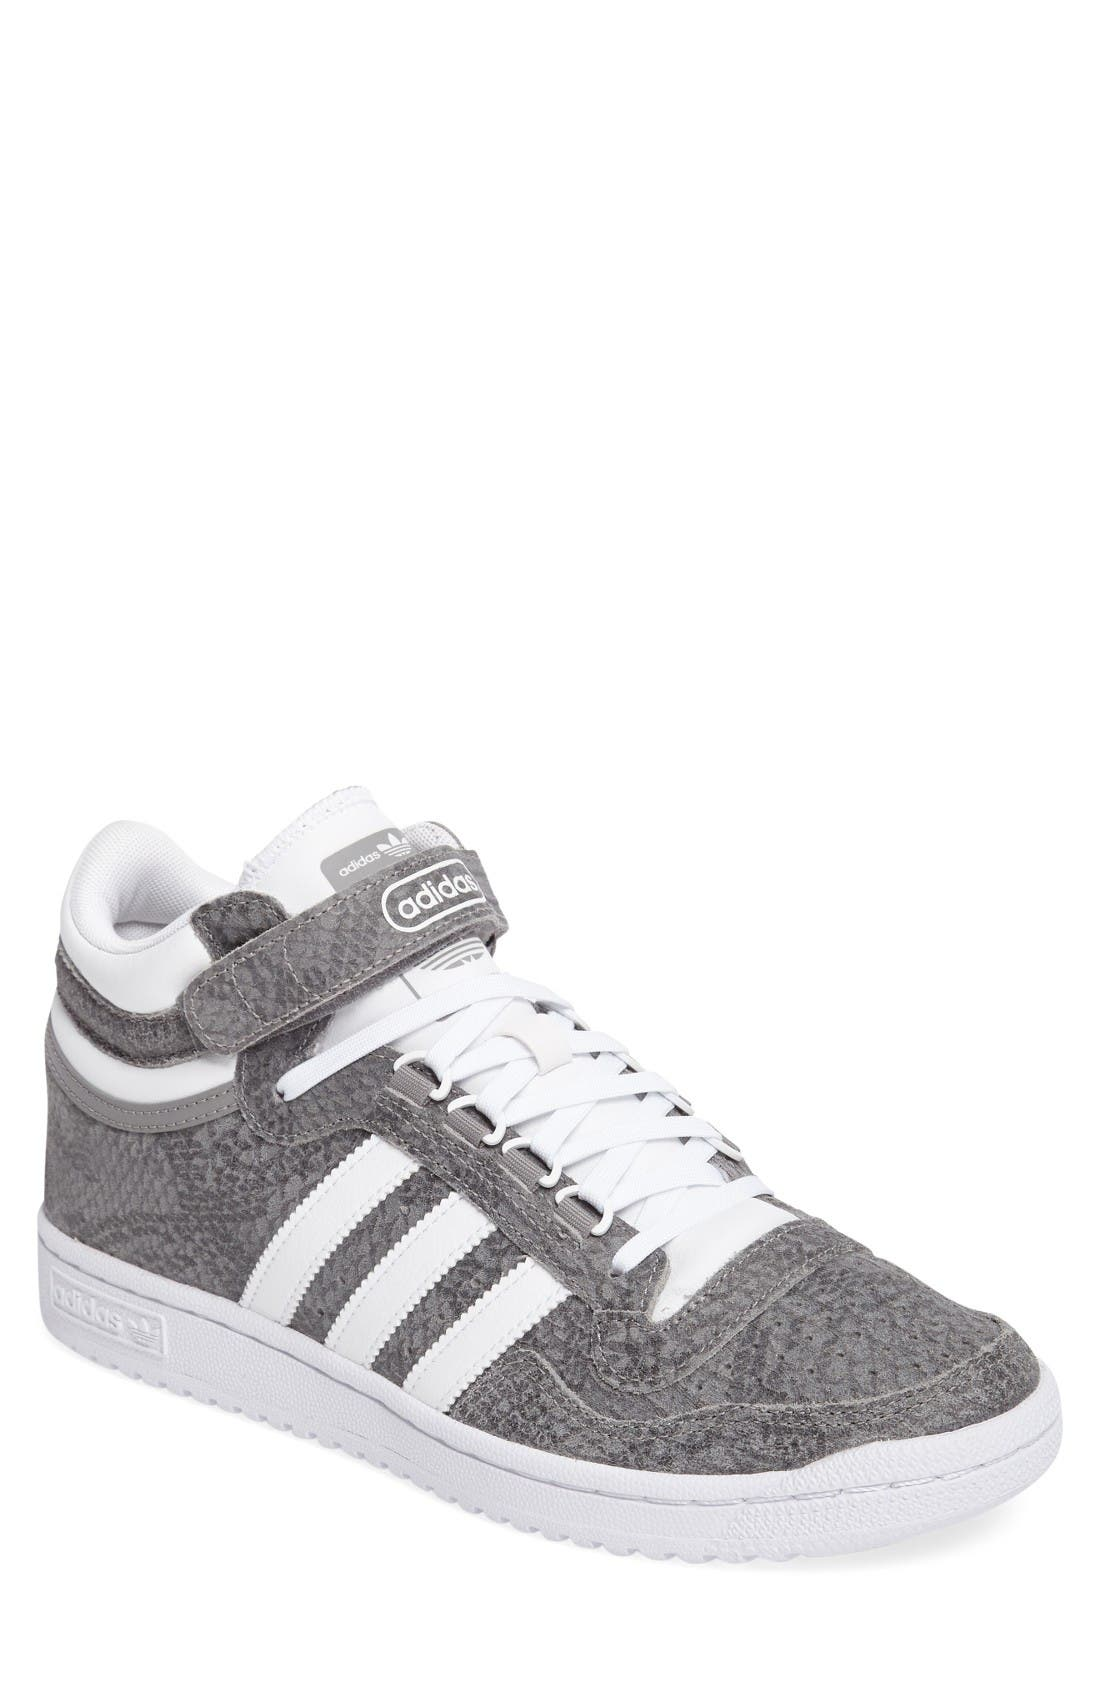 Alternate Image 1 Selected - adidas Concord 2.0 Mid Sneaker (Women)